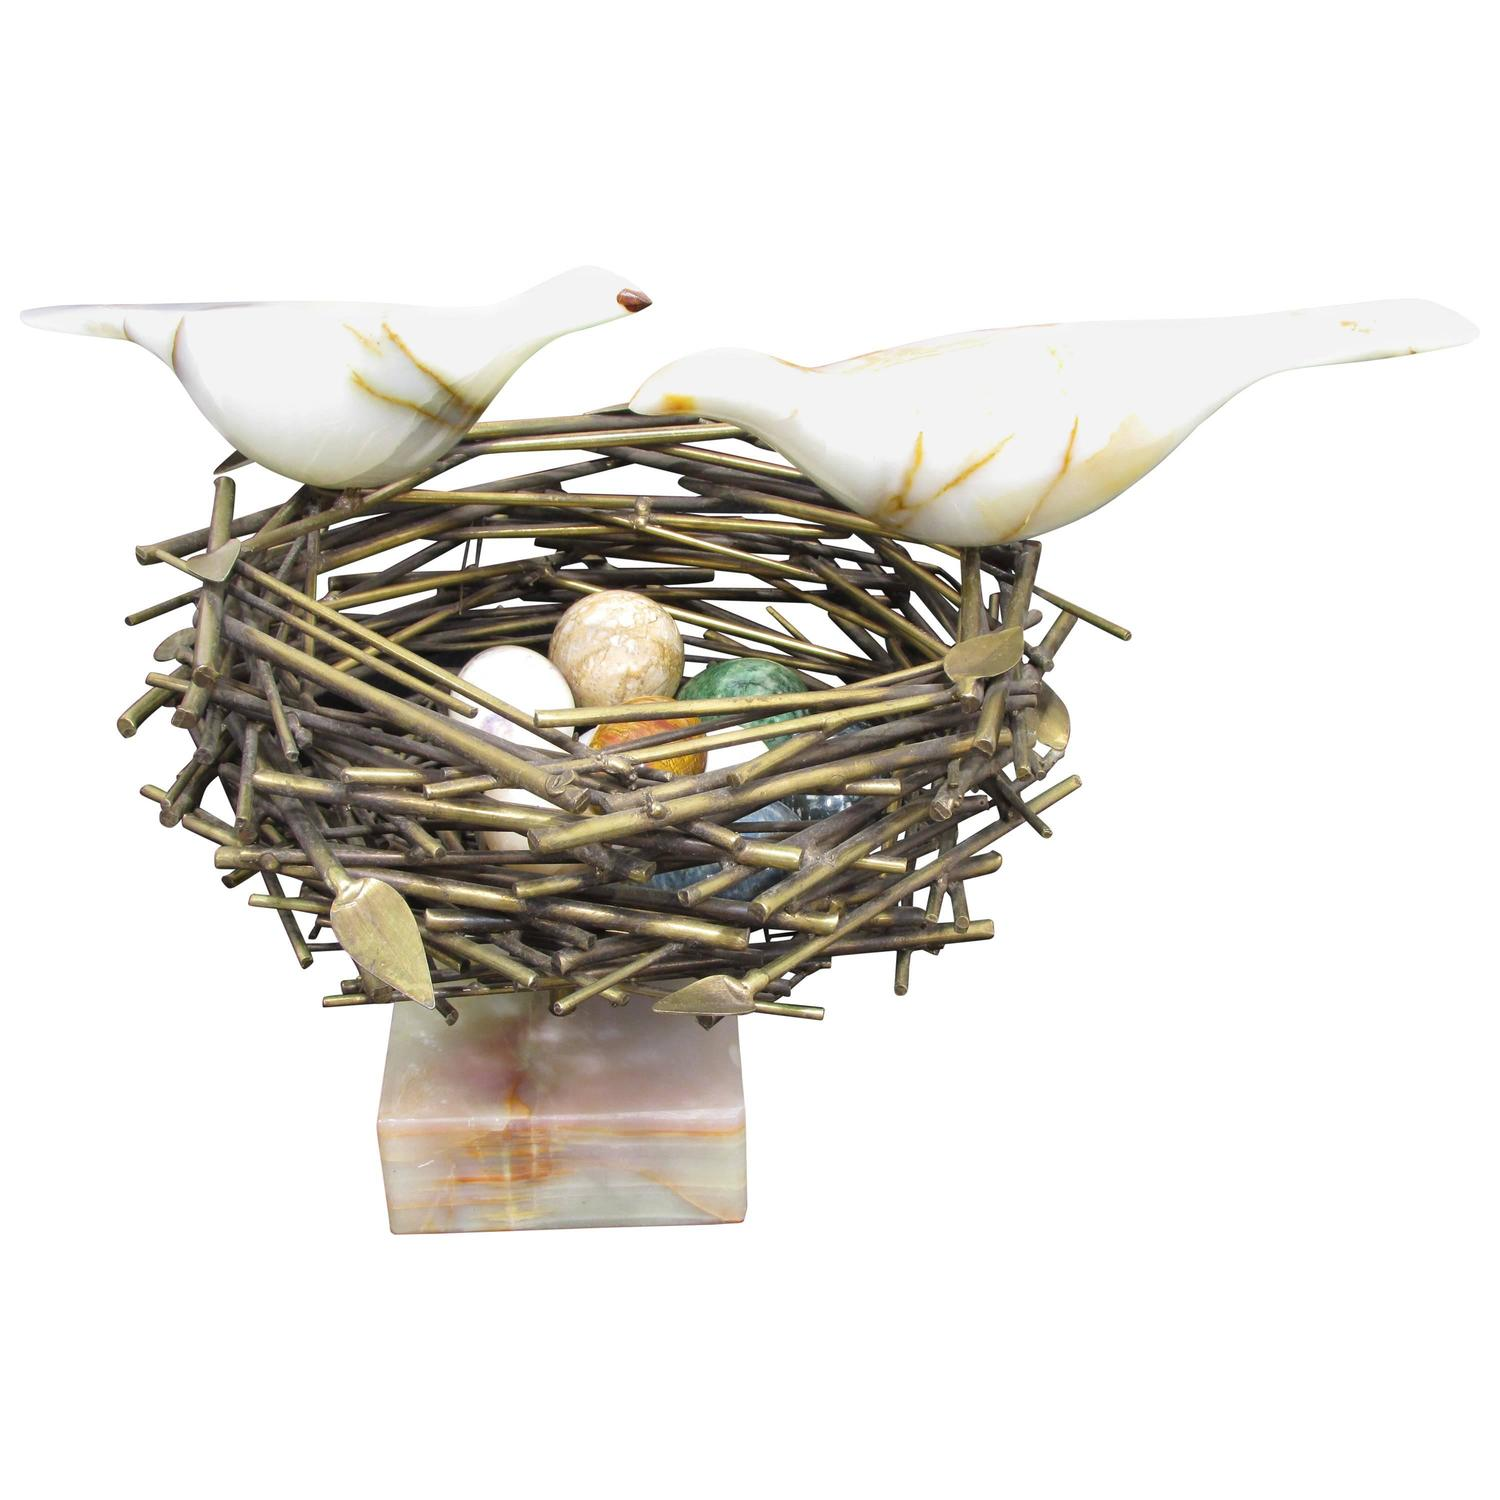 Art Clay Sculpted Bird Nest Ring: Bird Nest Sculpture By Curtis Jere For Sale At 1stdibs